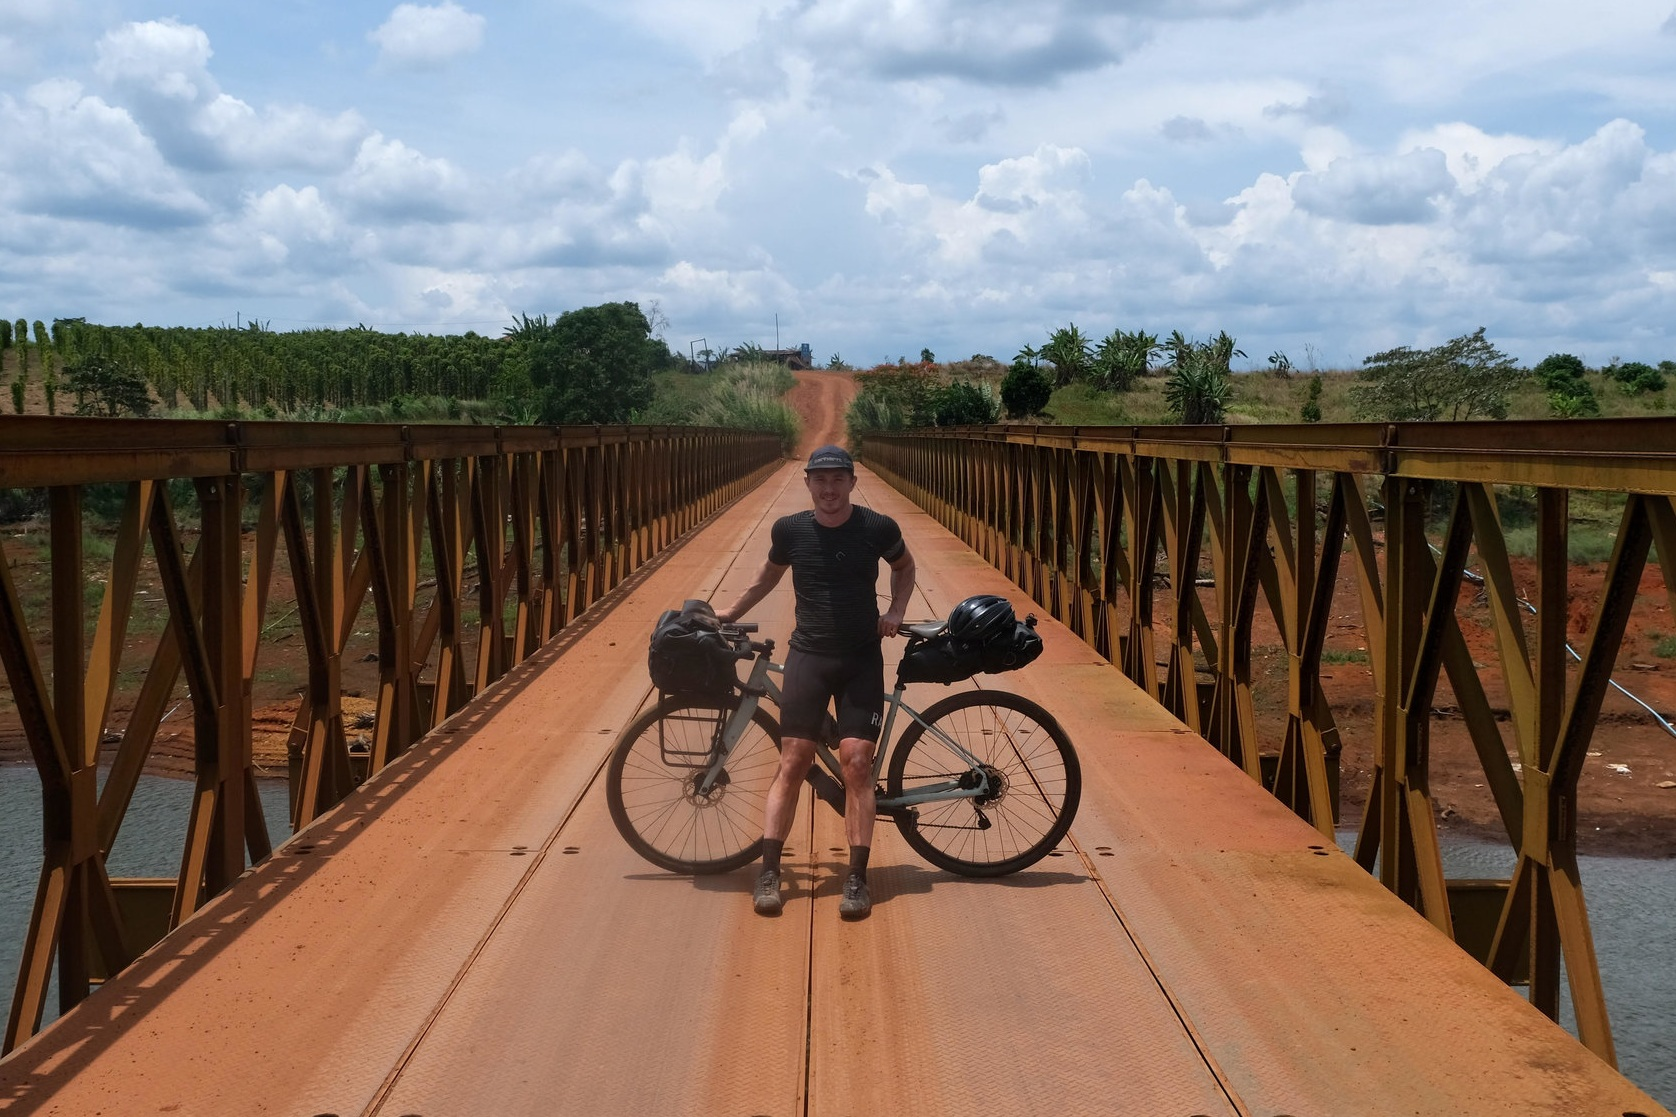 'Lightweight' - Riding across Cambodia with minimal possessions